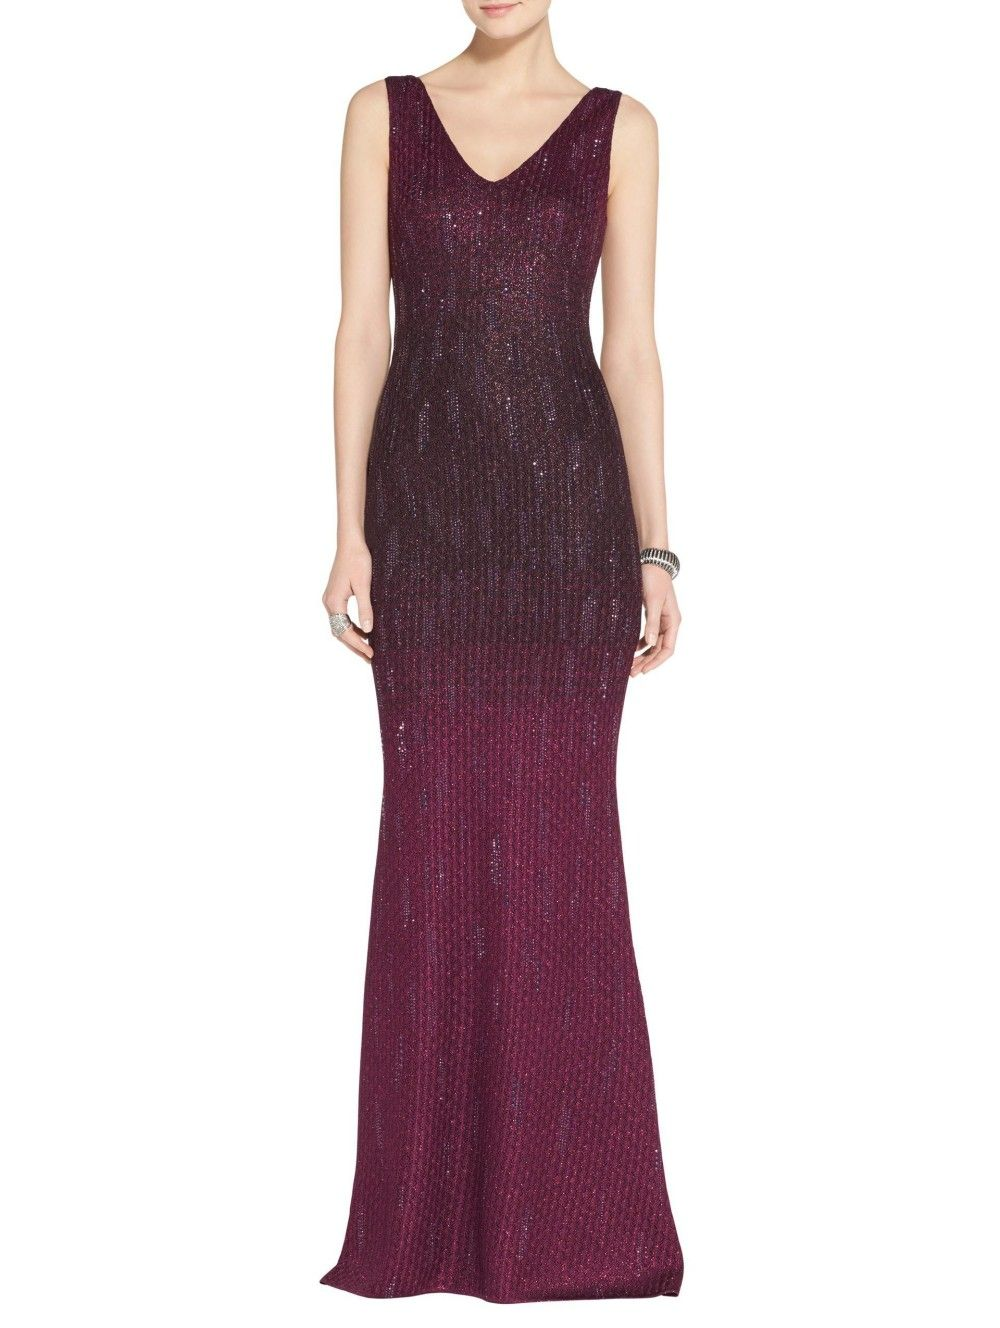 Kira Ombre Knit Gown   evening   Pinterest   Ombre, Gowns and ...